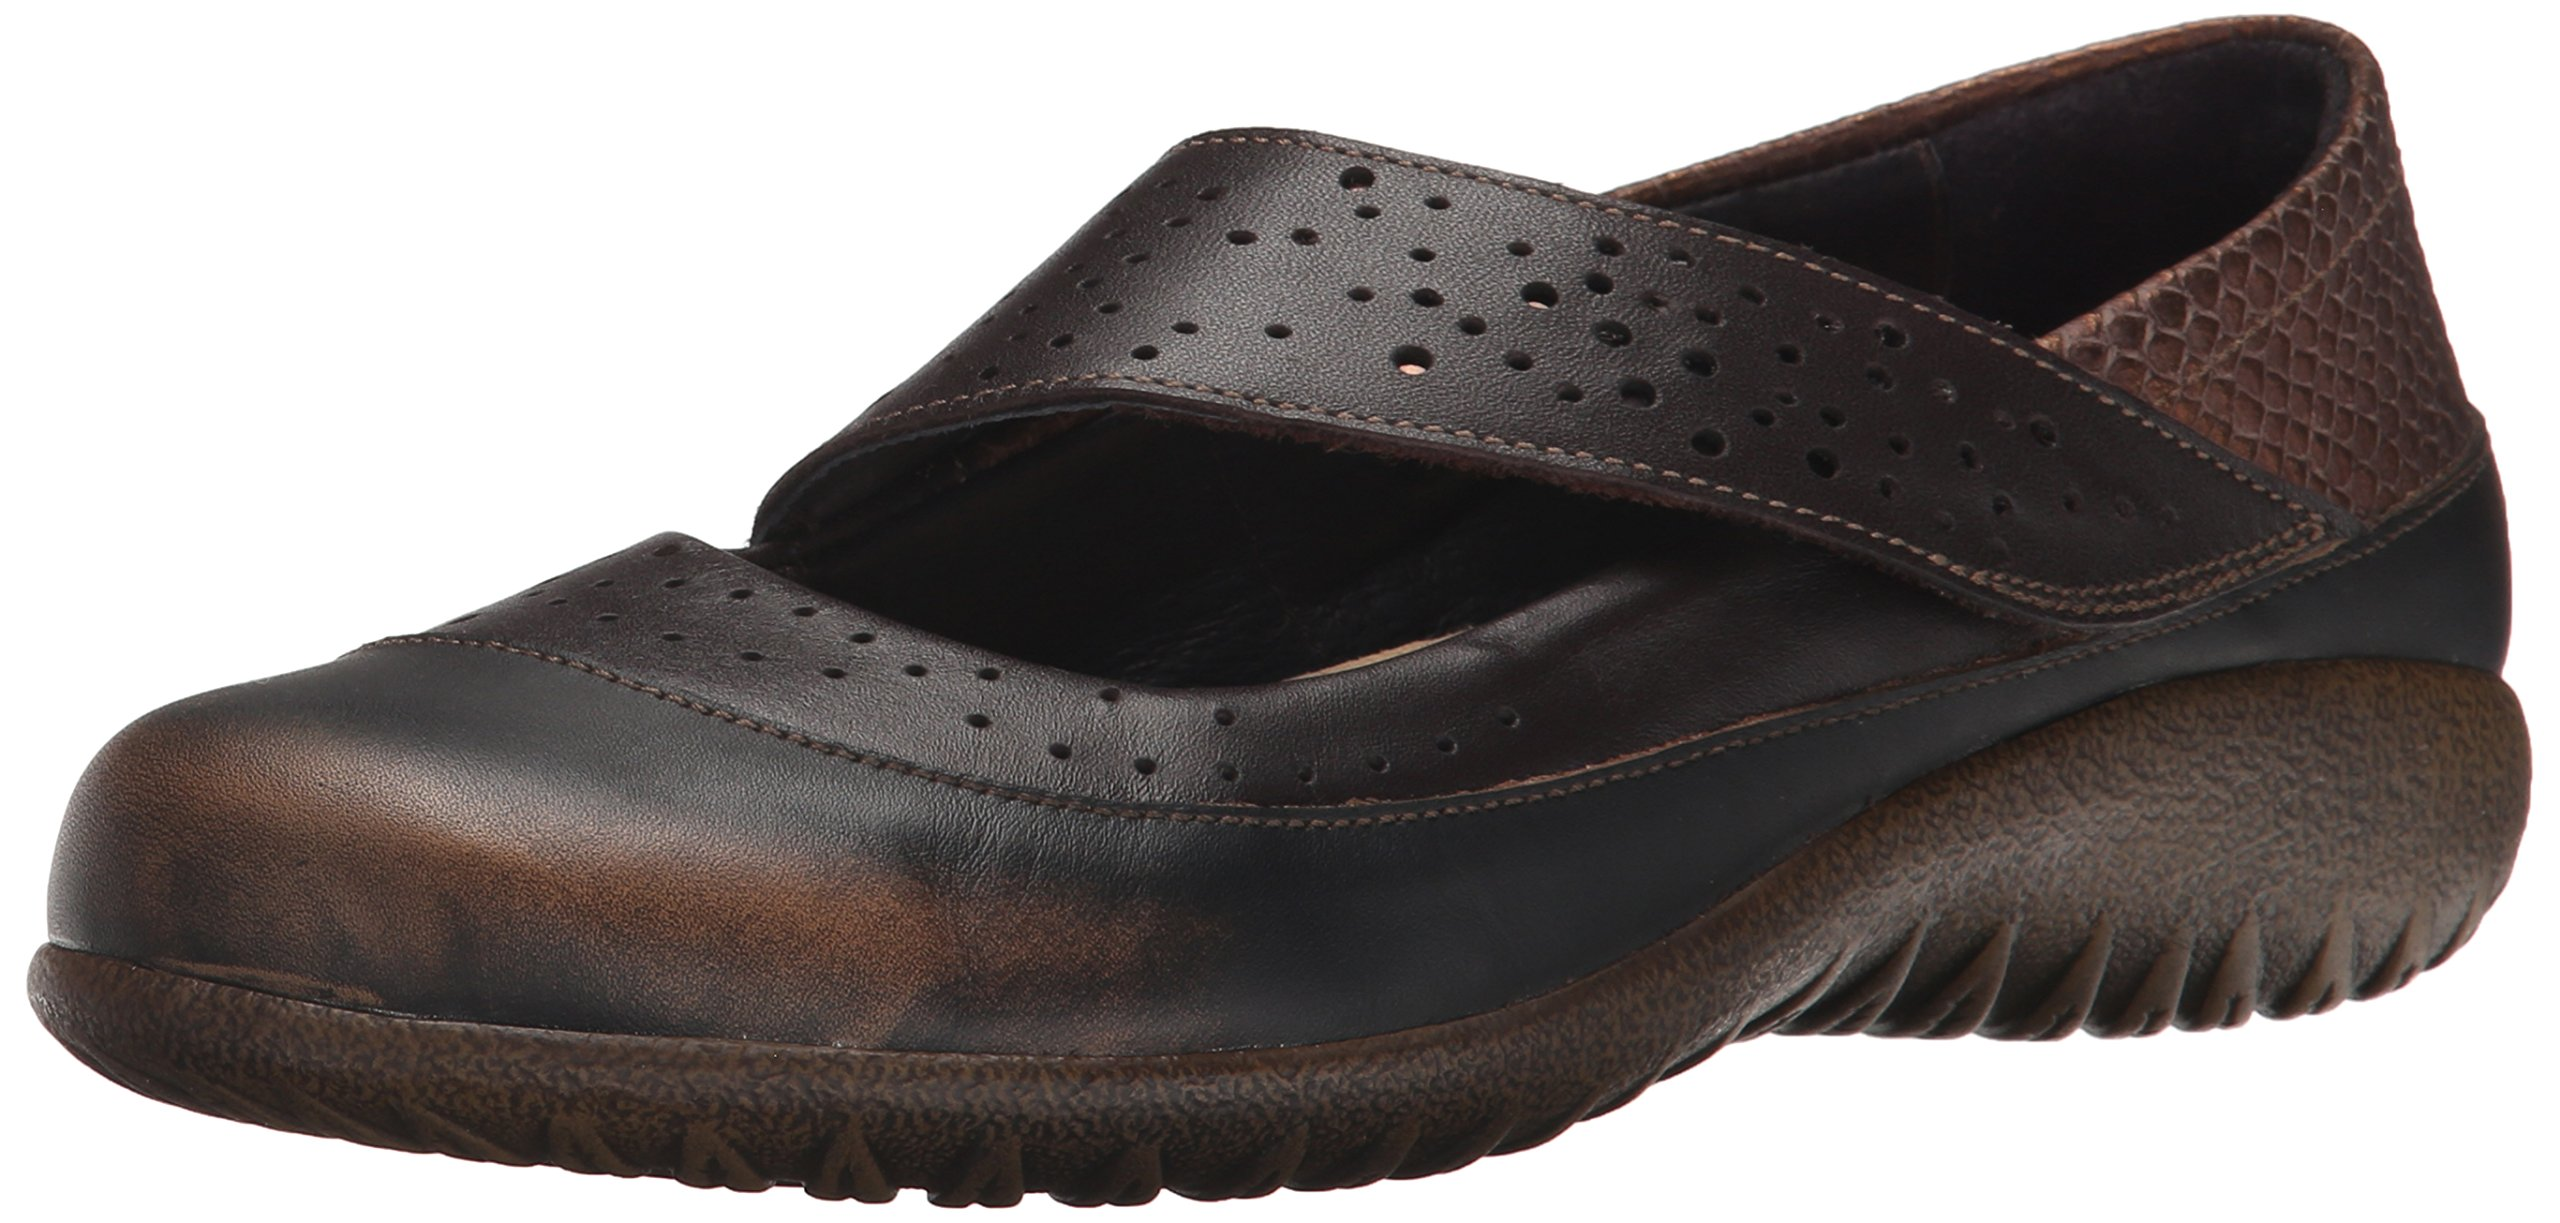 NAOT Women's Aroha Mary Jane Flat, Volcanic Brown Leather/French Roast Leather/Brown Lizard Leather/Glass Brown, 36 EU/5-5.5 M US